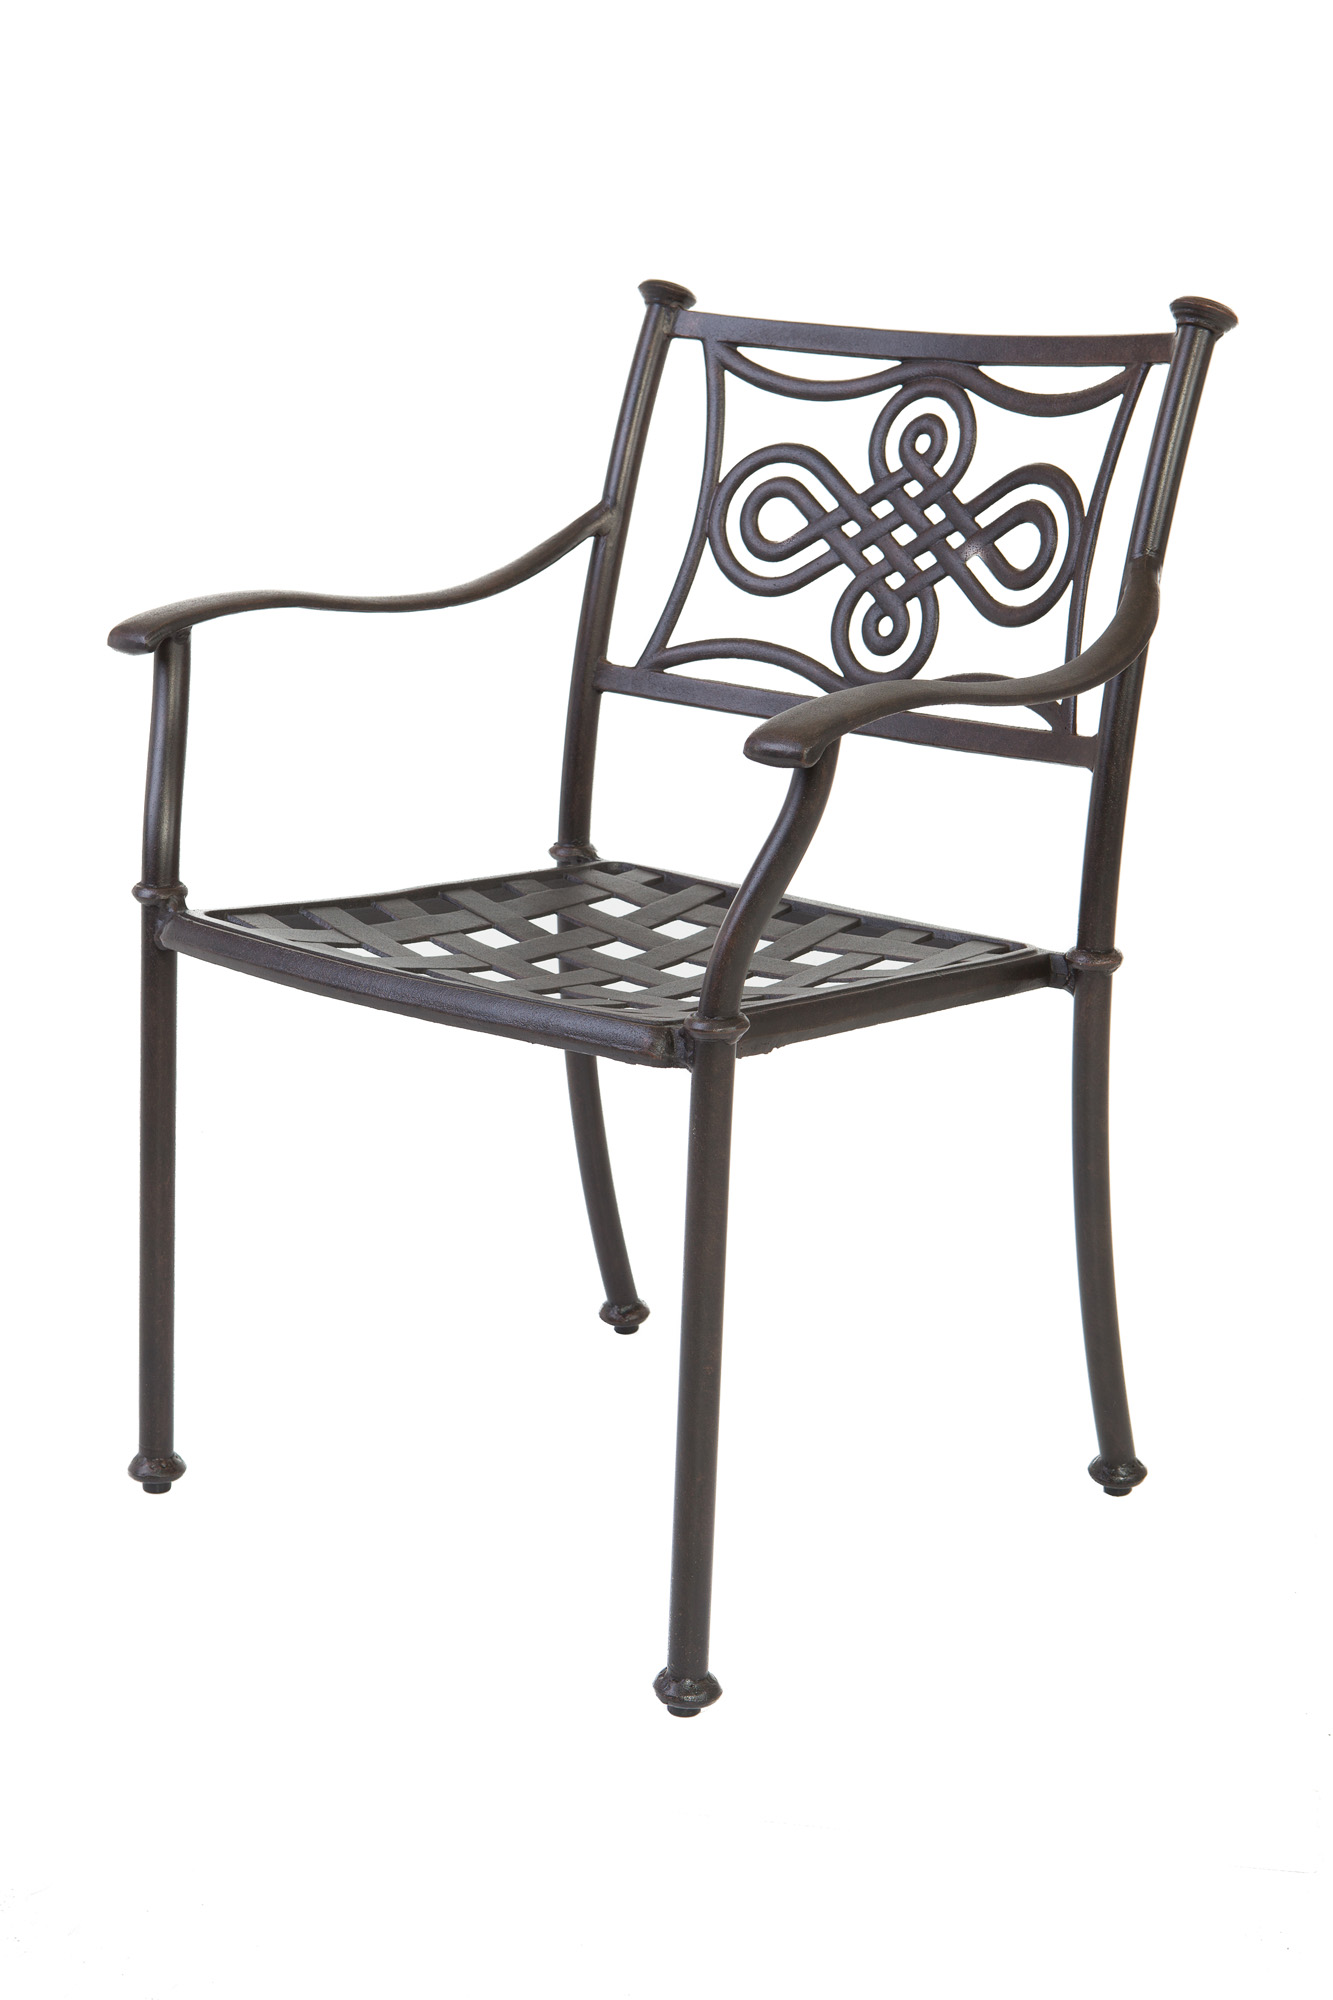 23 Unique Metal Patio Chairs With Cushions